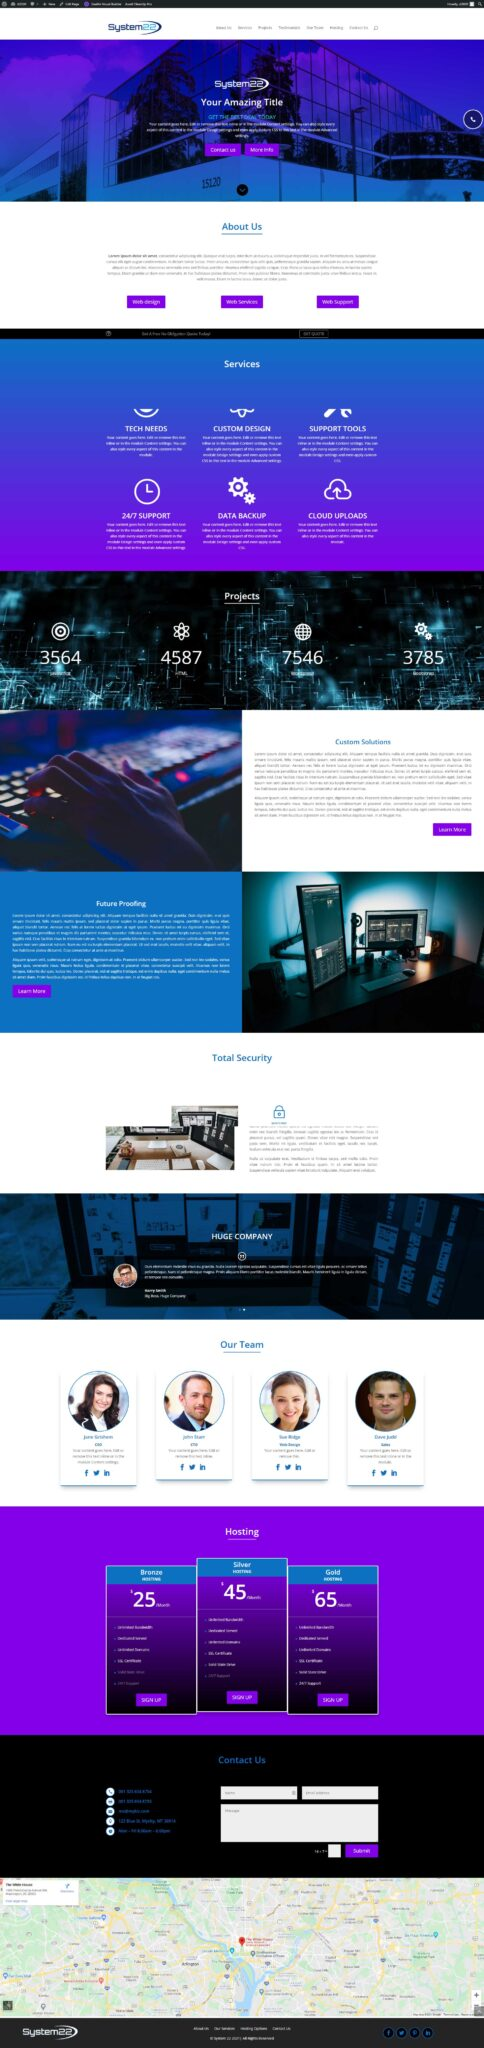 Complete-Divi-Theme-One-Page-Scrolling-Site